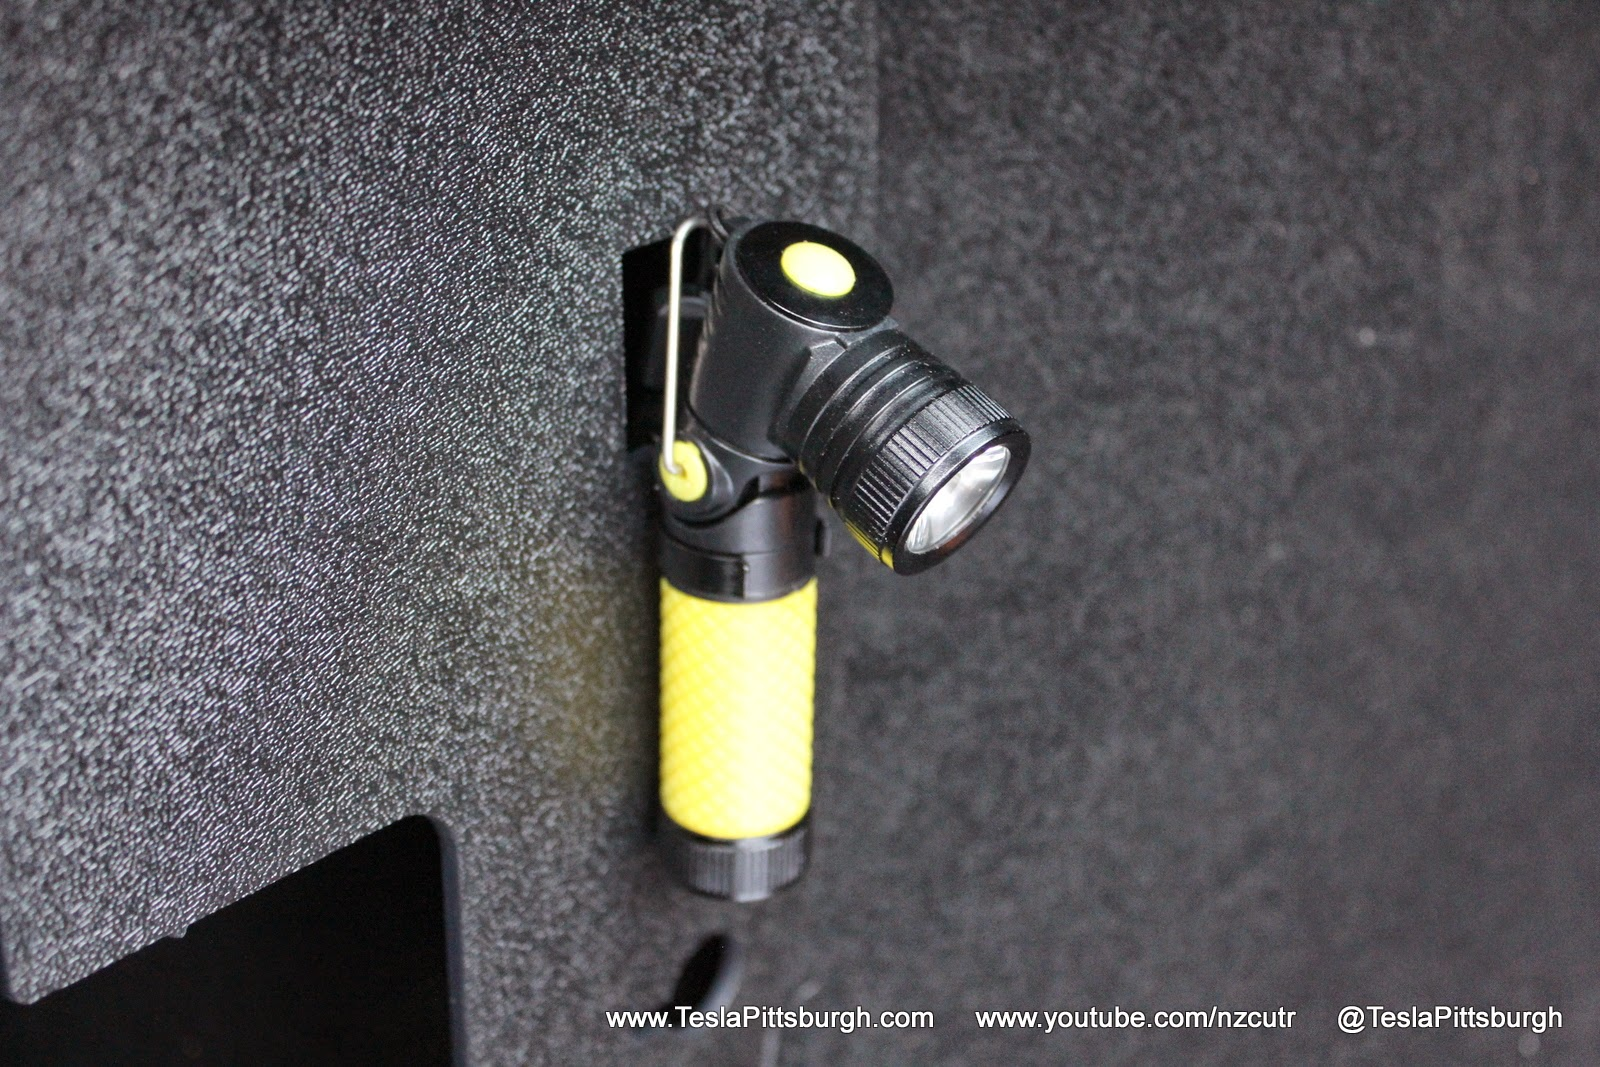 Model-S-Charge-Adapter-Lighting-Case-14